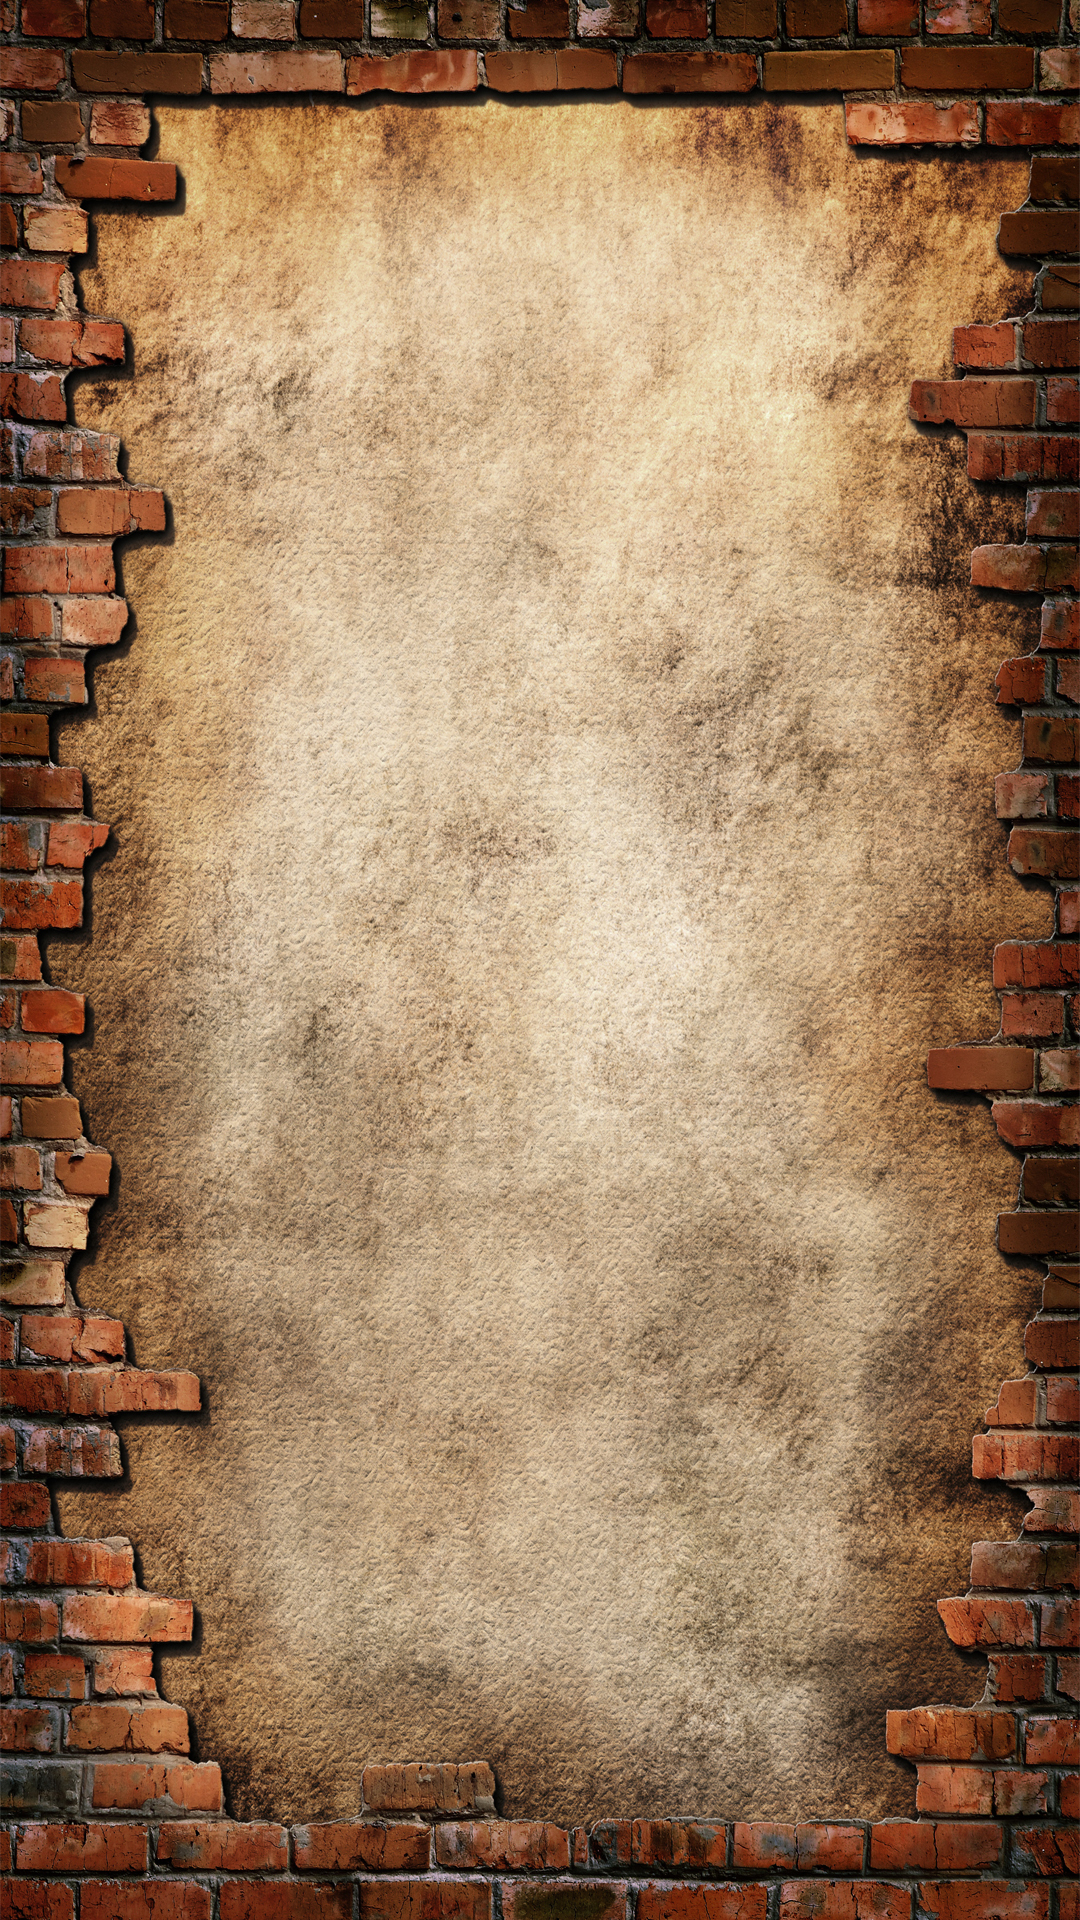 3d Tile Wallpaper H5 Old Wall Background Material Old Wall Brick